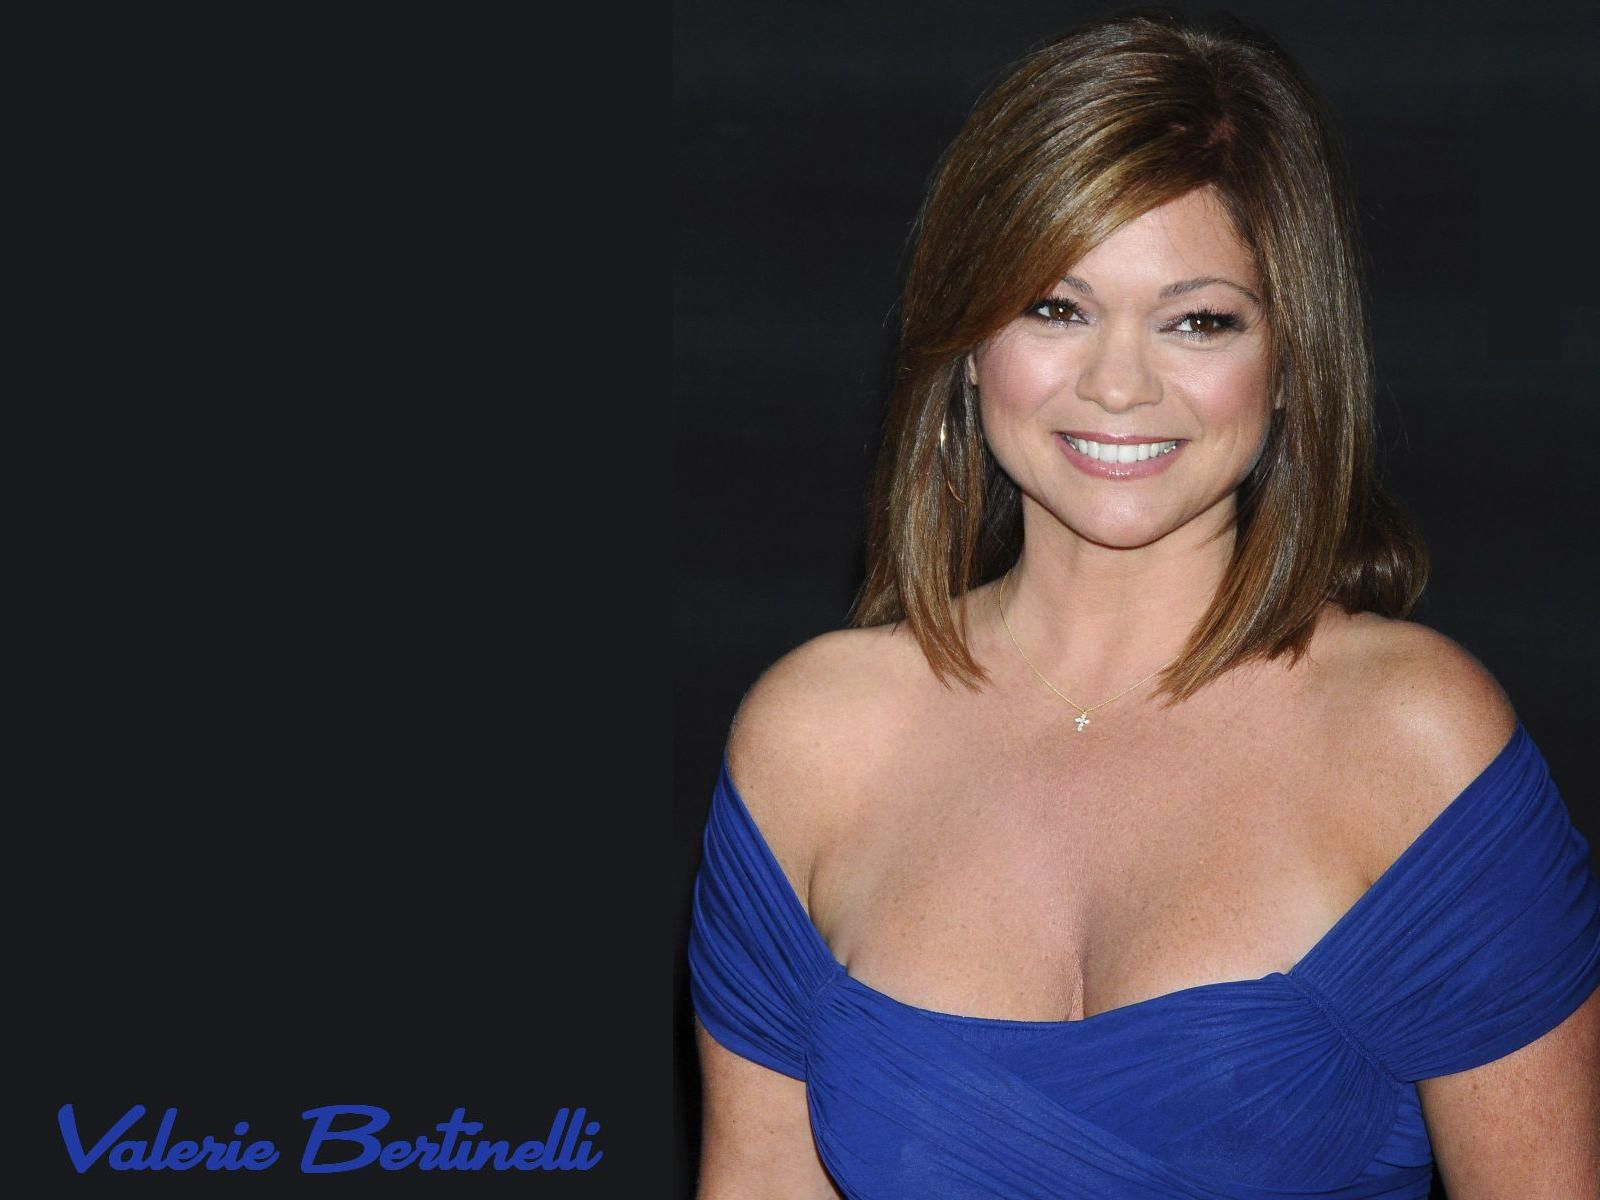 Valerie Bertinelli widescreen wallpapers